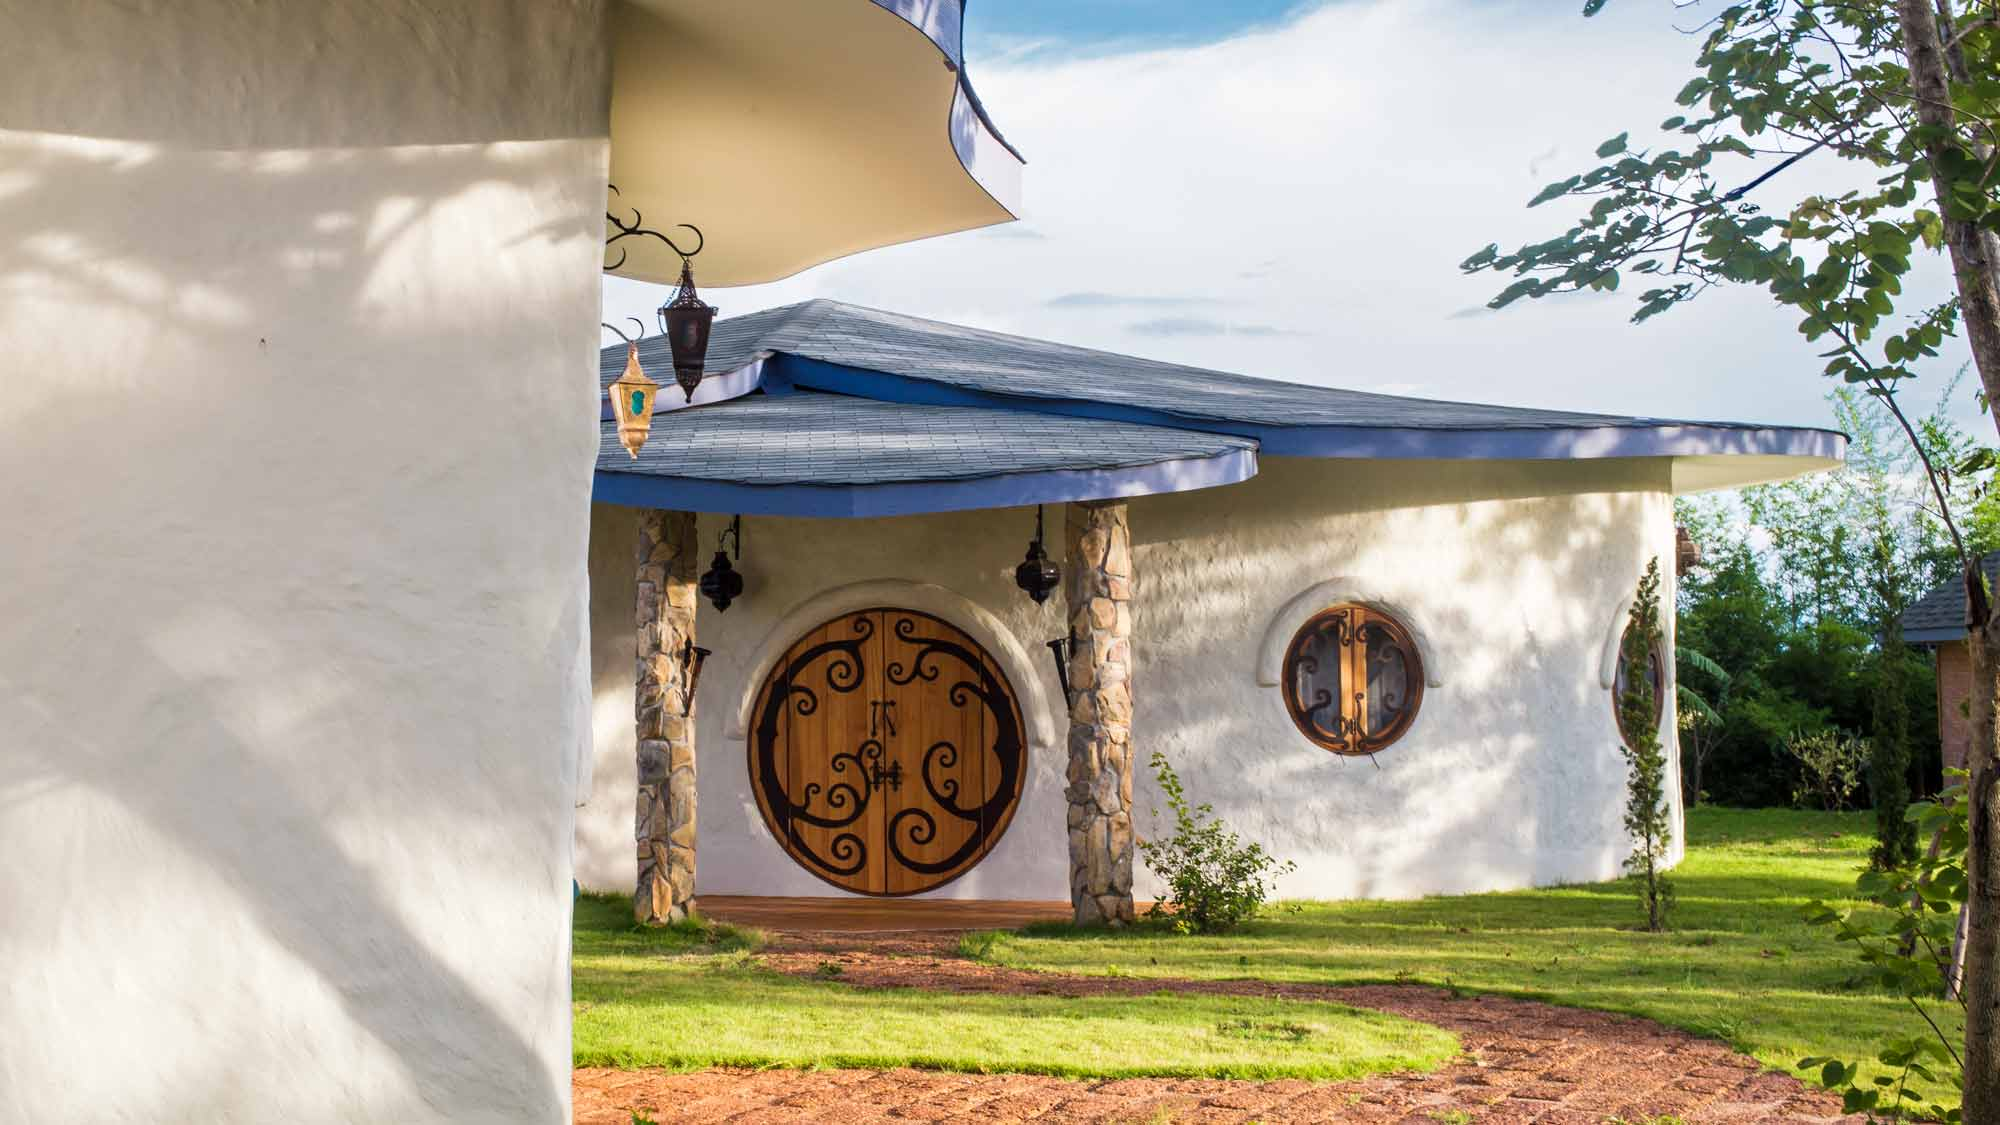 The Hobbit Villa